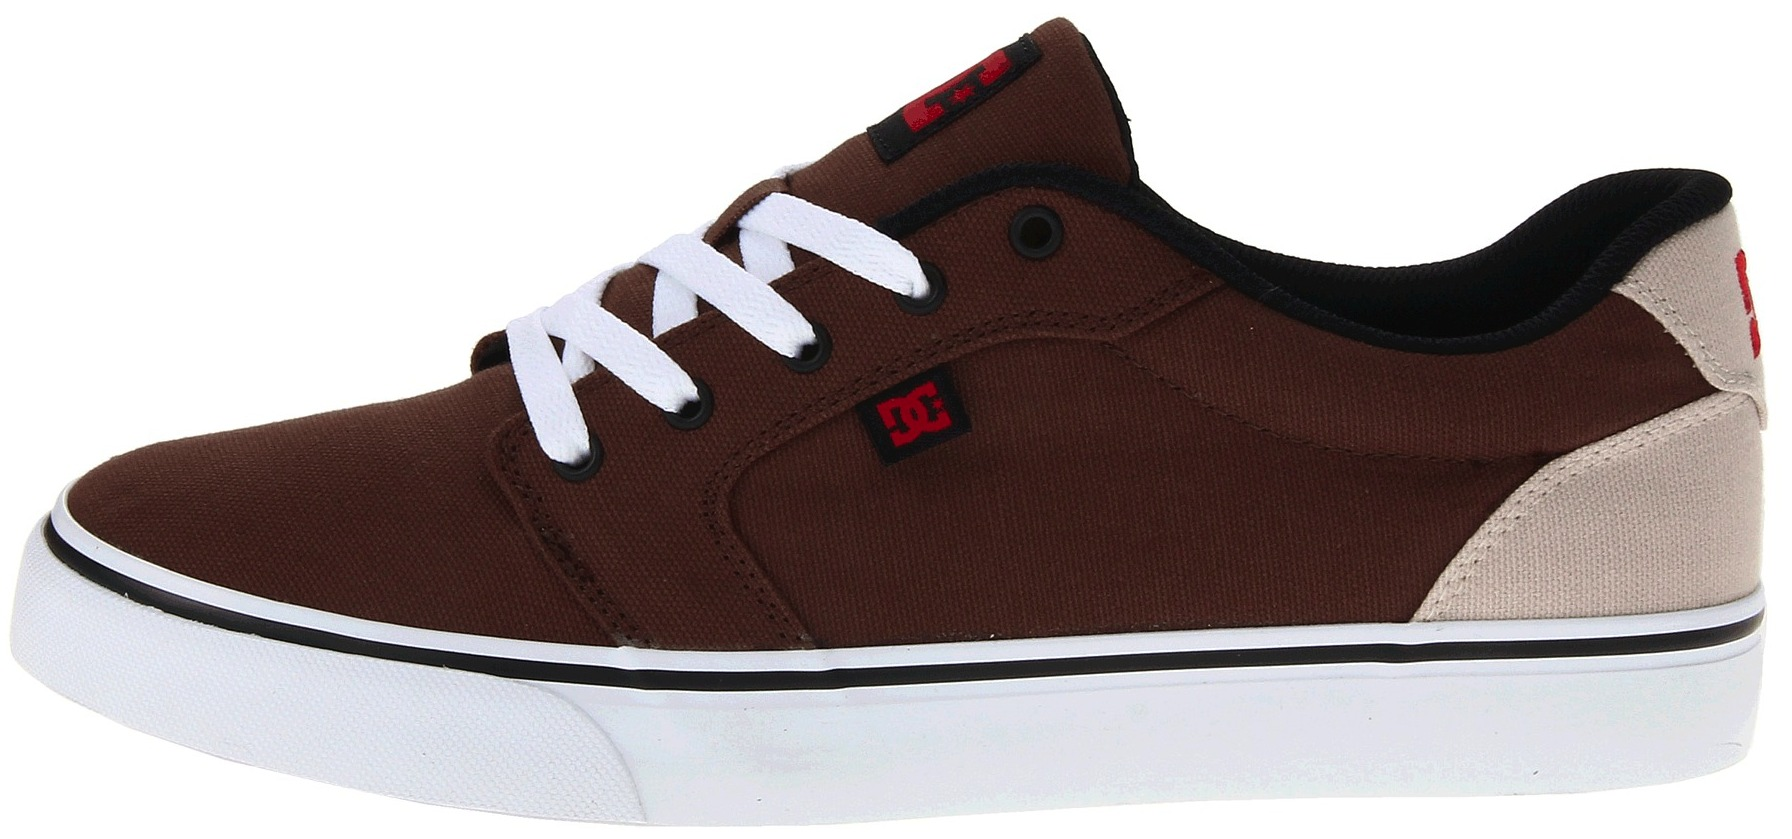 DC Anvil TX canvas Vegan skateboard shoes